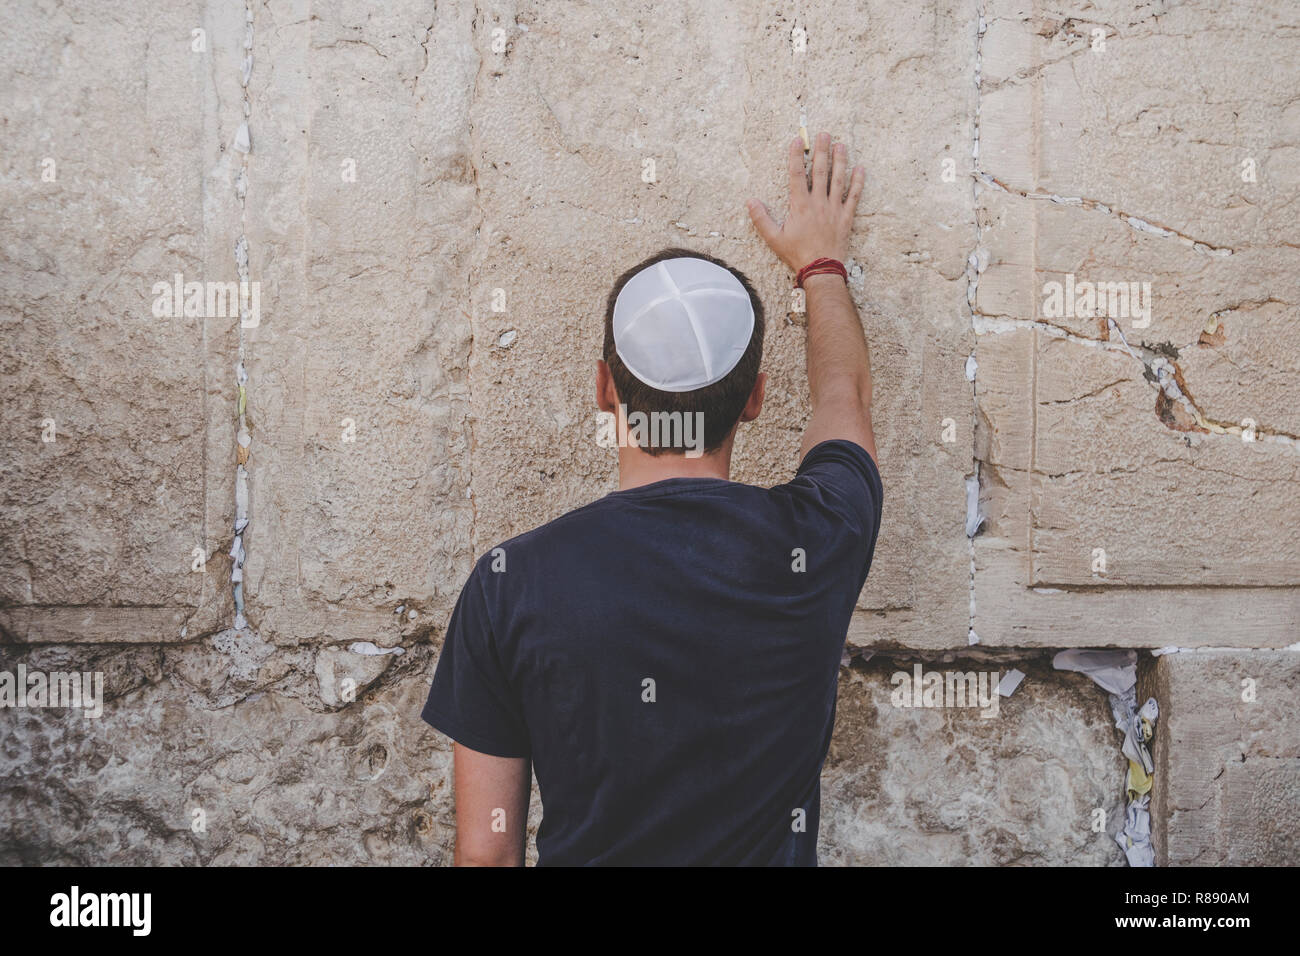 Man hand and pray paper on the Western Wall, Wailing Wall the Place of Weeping is an ancient limestone wall in the Old City of Jerusalem. Second Jewis - Stock Image